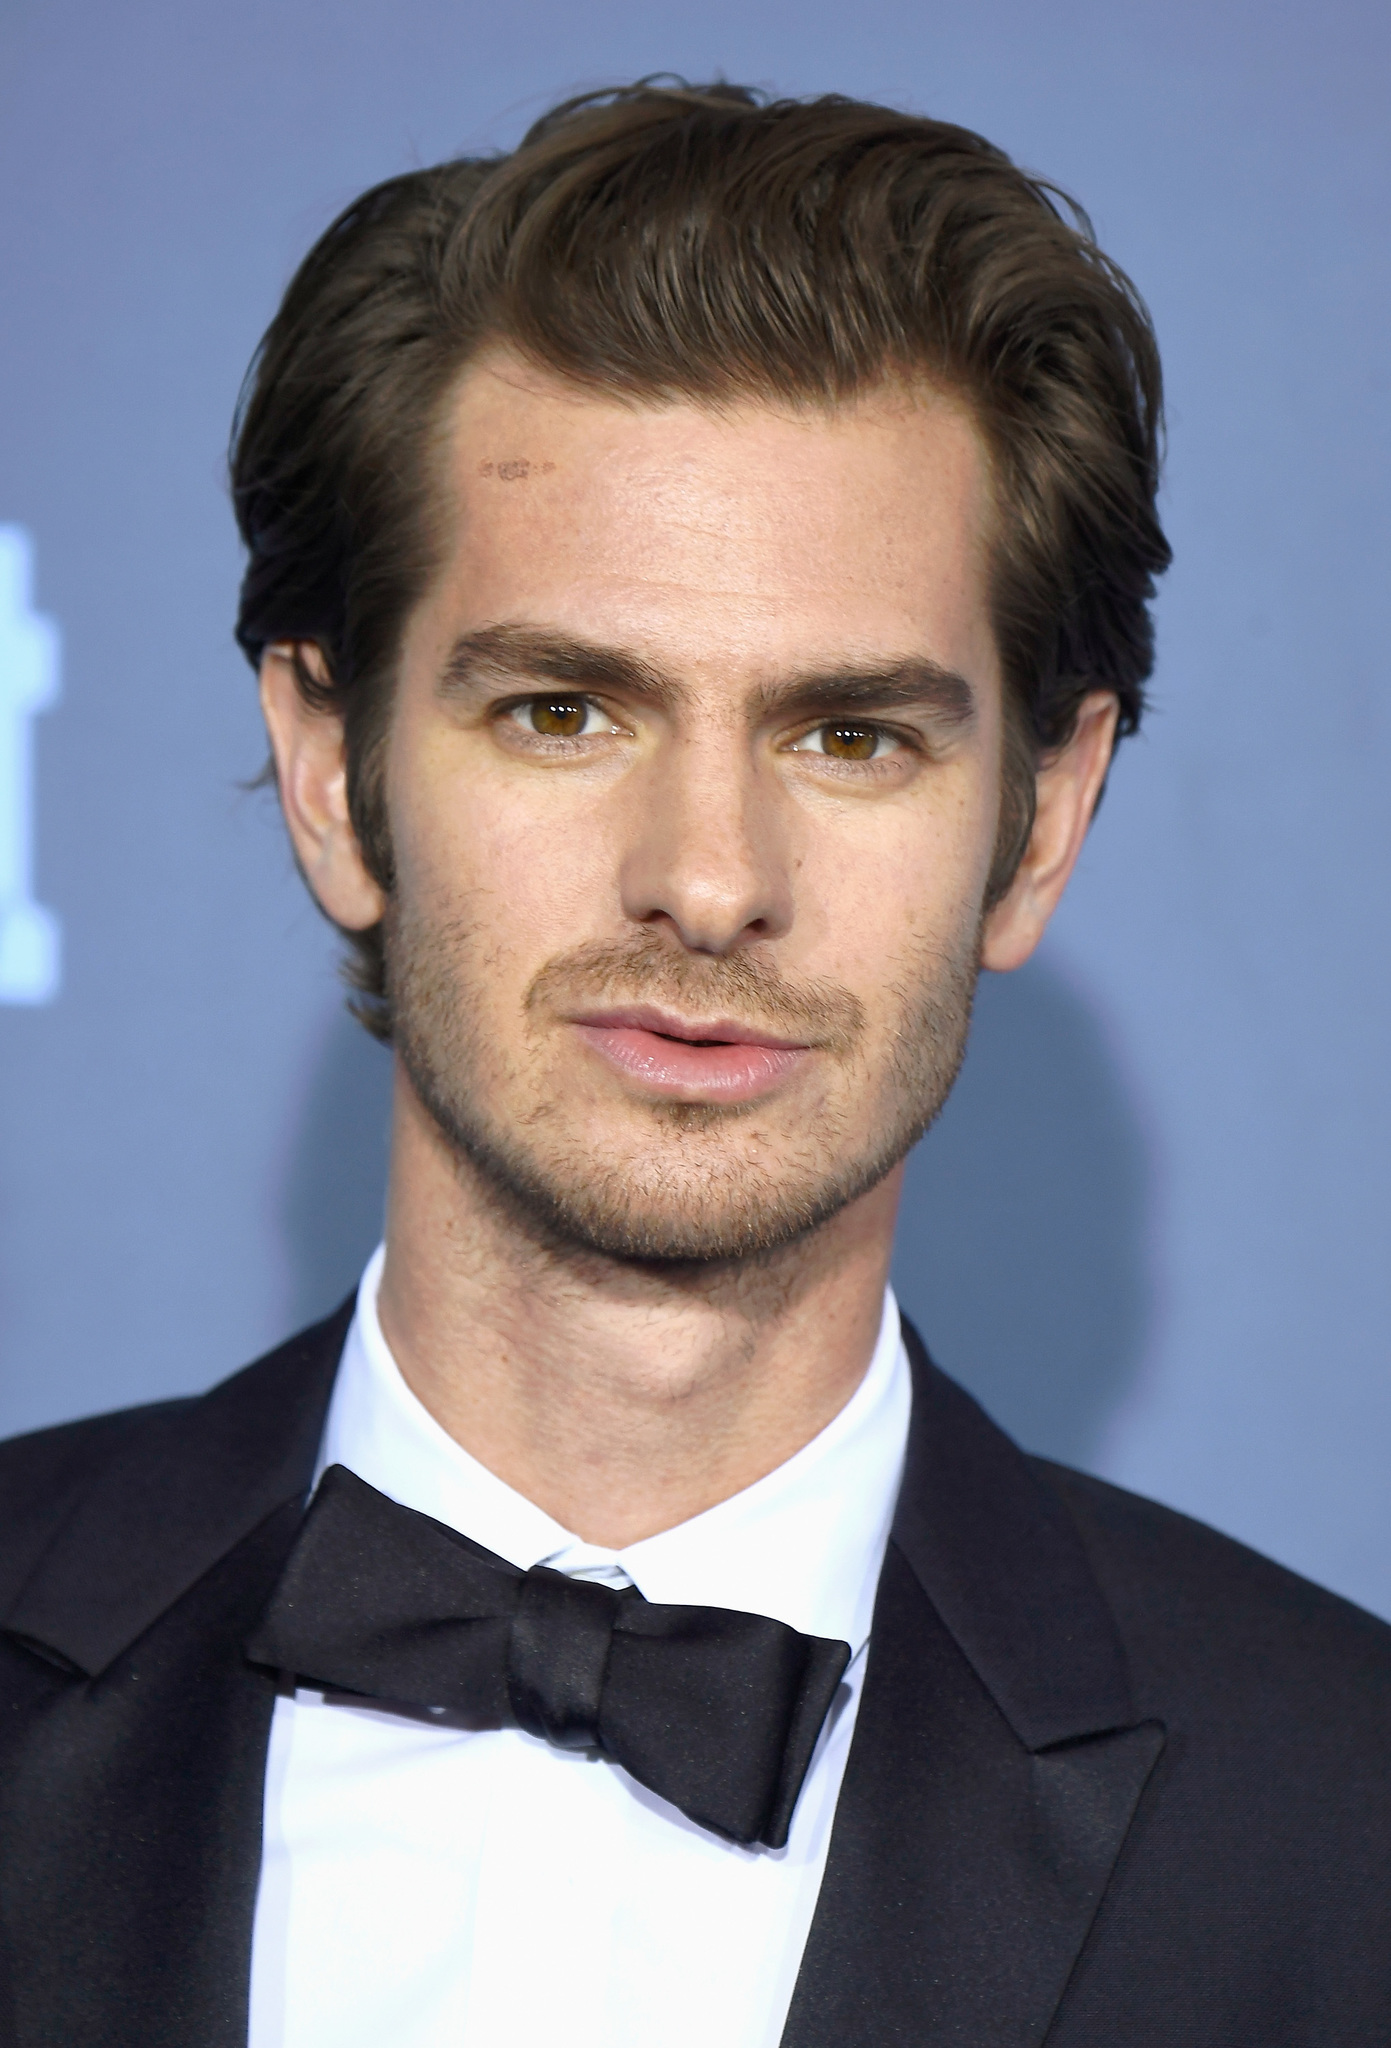 Andrew Garfield - Contact Info, Agent, Manager | IMDbPro Andrew Garfield